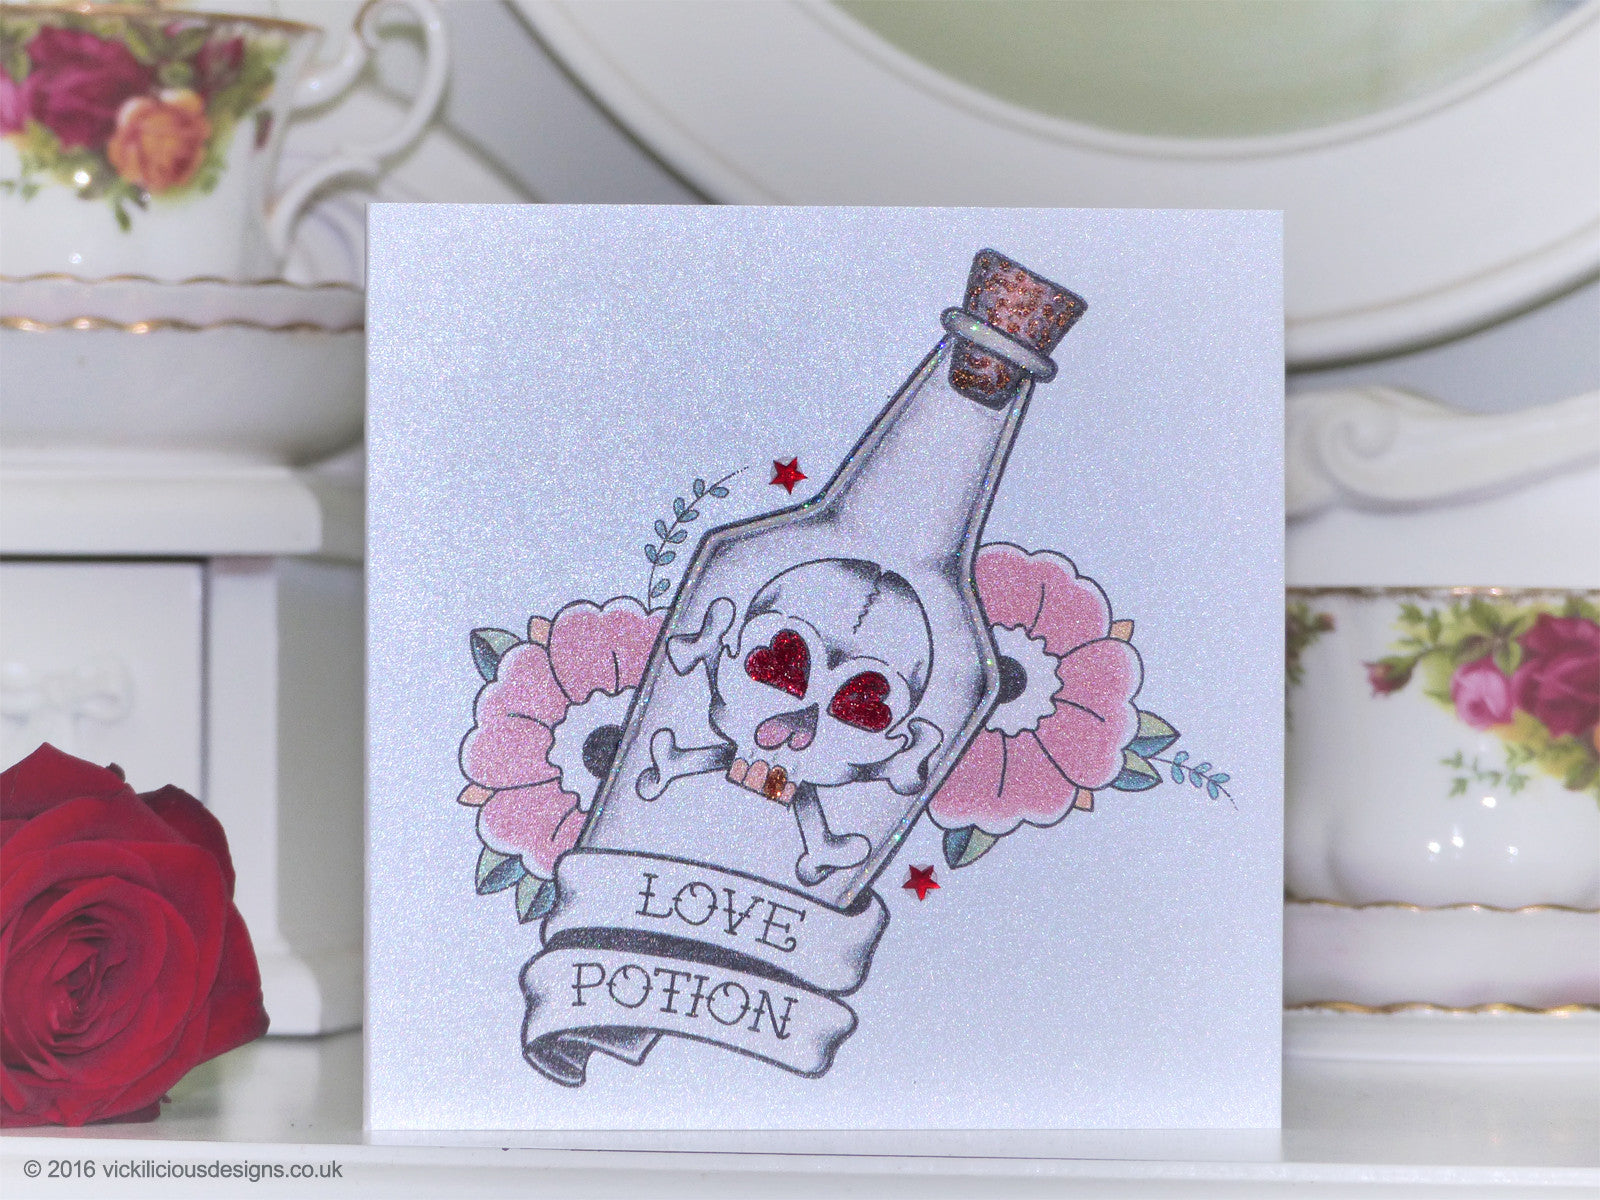 Handmade Valentine S Day Card Love Potion Tattoo Vickilicious